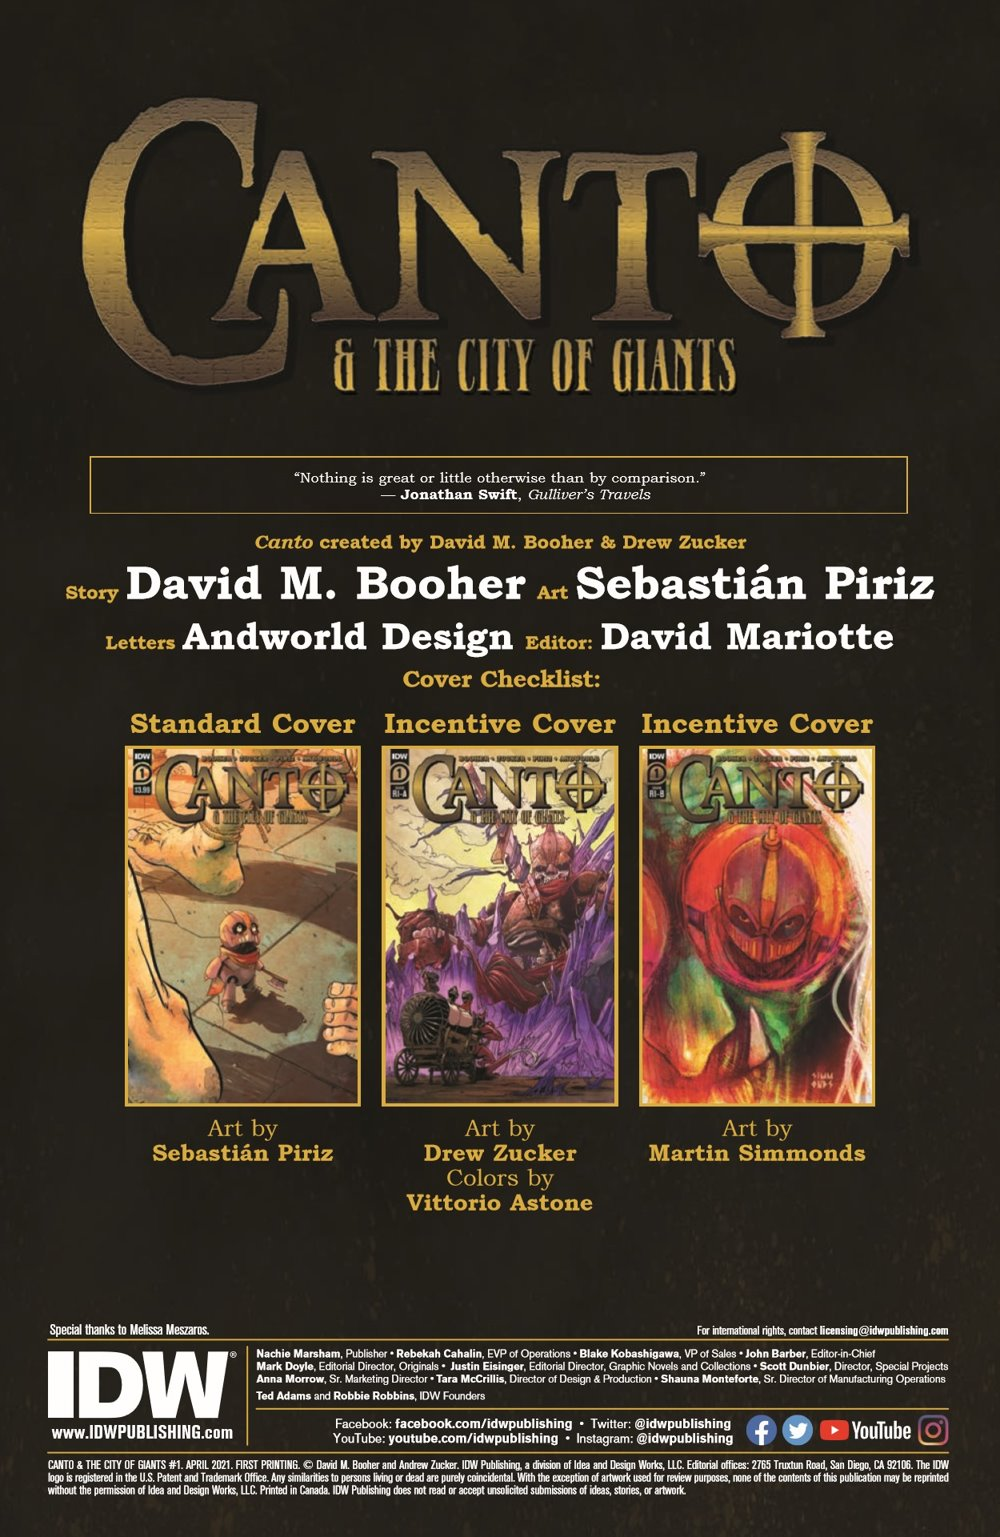 Canto-CoG01_pr-2 ComicList Previews: CANTO AND THE CITY OF GIANTS #1 (OF 3)